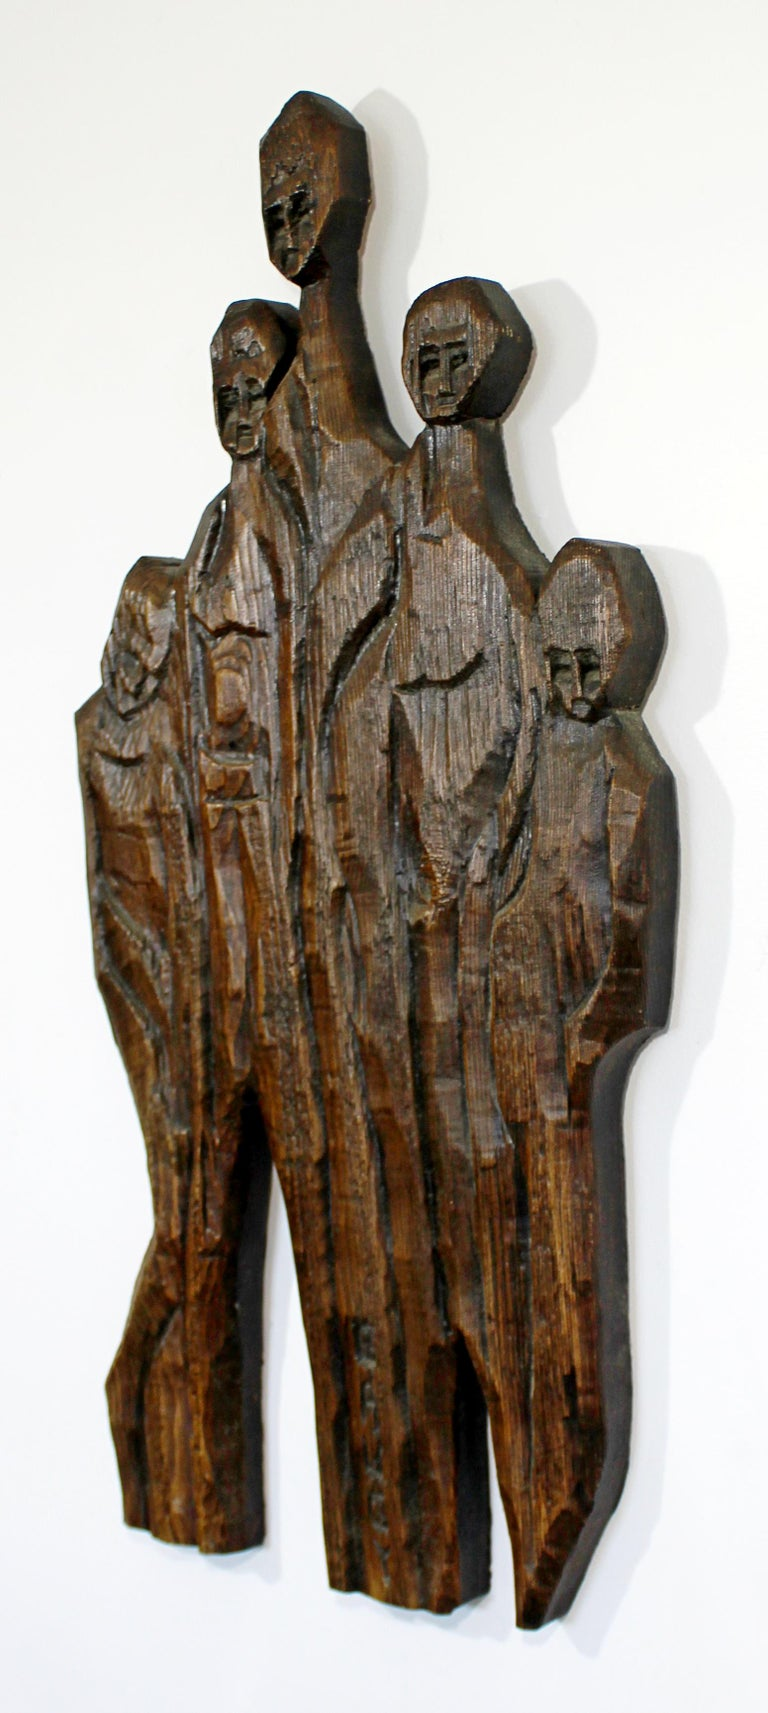 For your consideration is a subtly spectacular, carved wood wall art sculpture relief, signed by Jean-Claude Gaugy, and dated 1969. In excellent vintage condition. The dimensions are 18